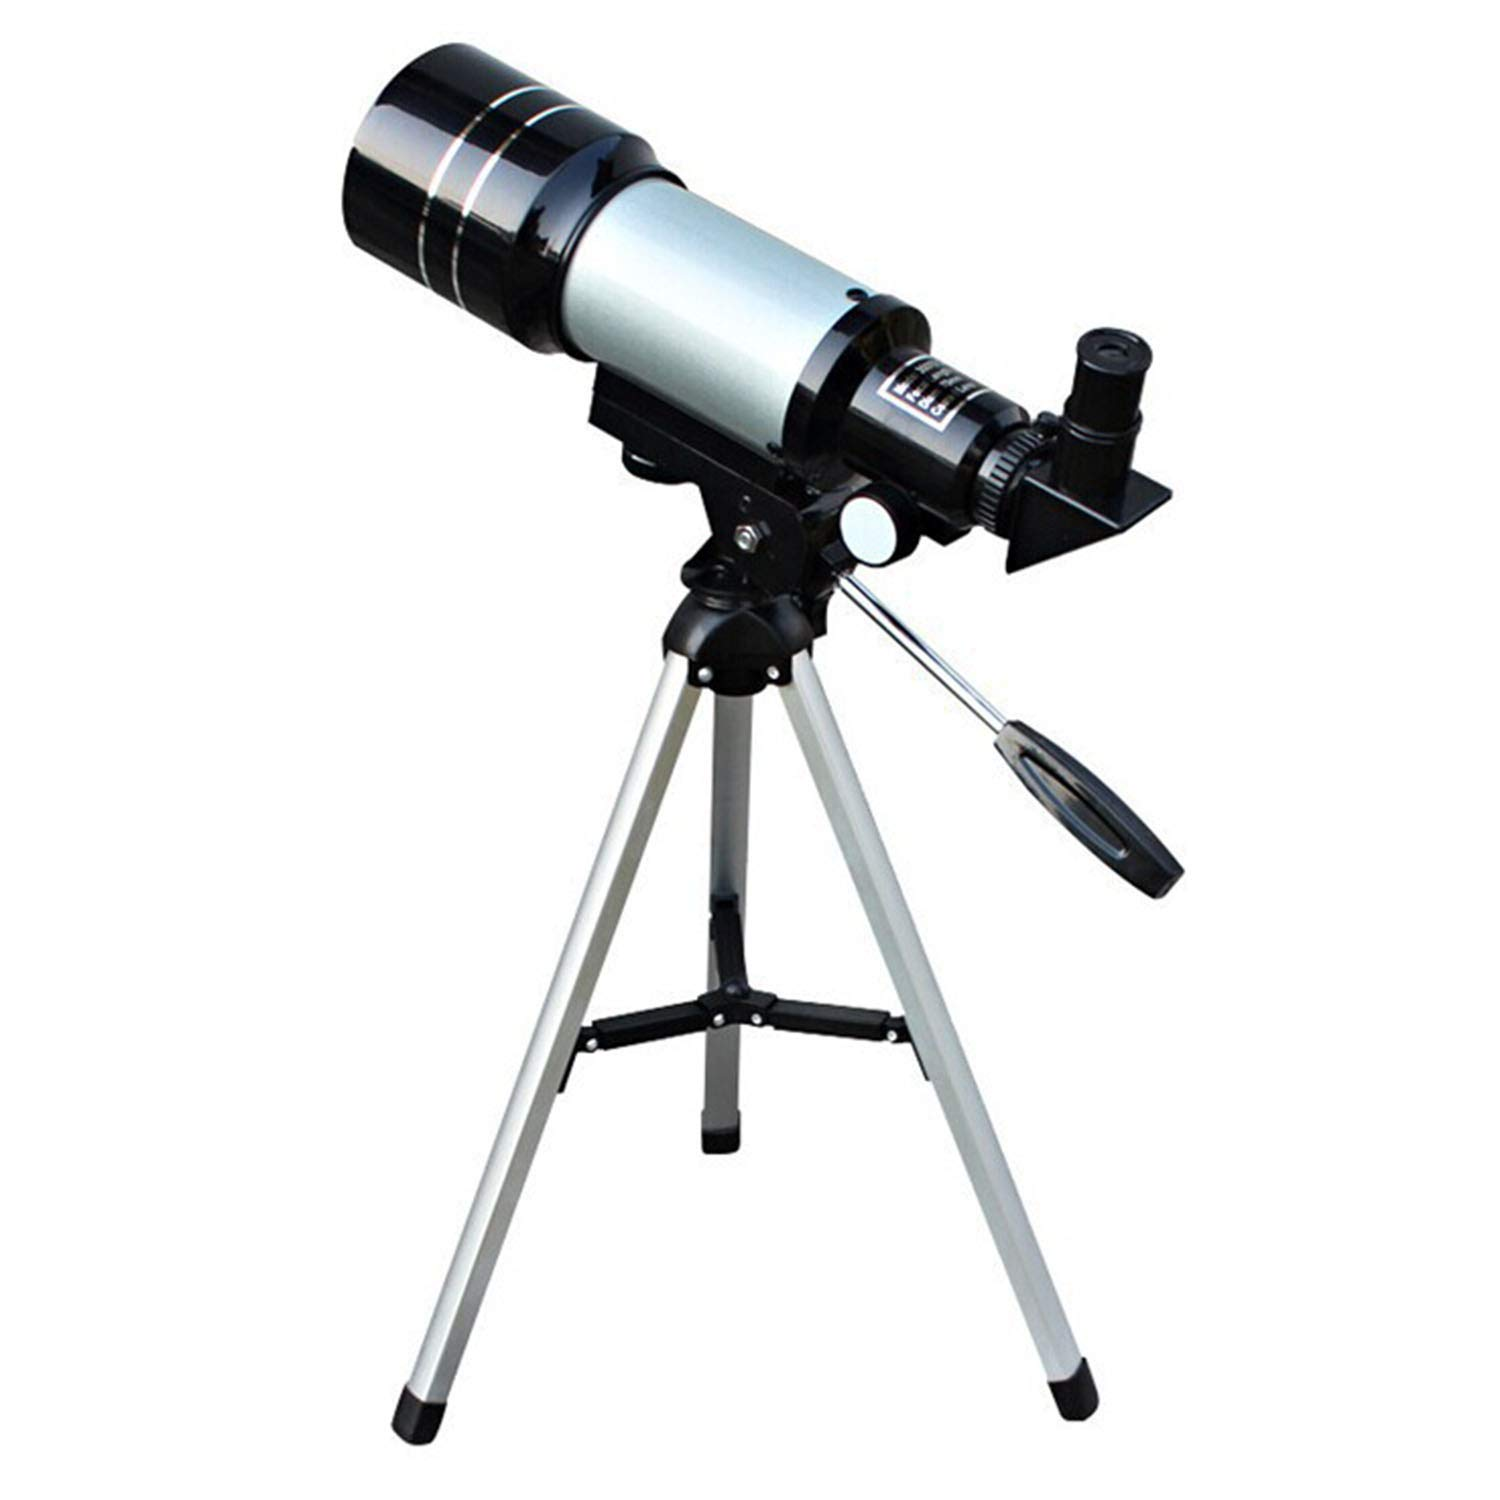 YAMADIE Children's Professional Astronomical Telescope, Single Tube, with A Tripod Student Gift Maximum Magnification 150 Times